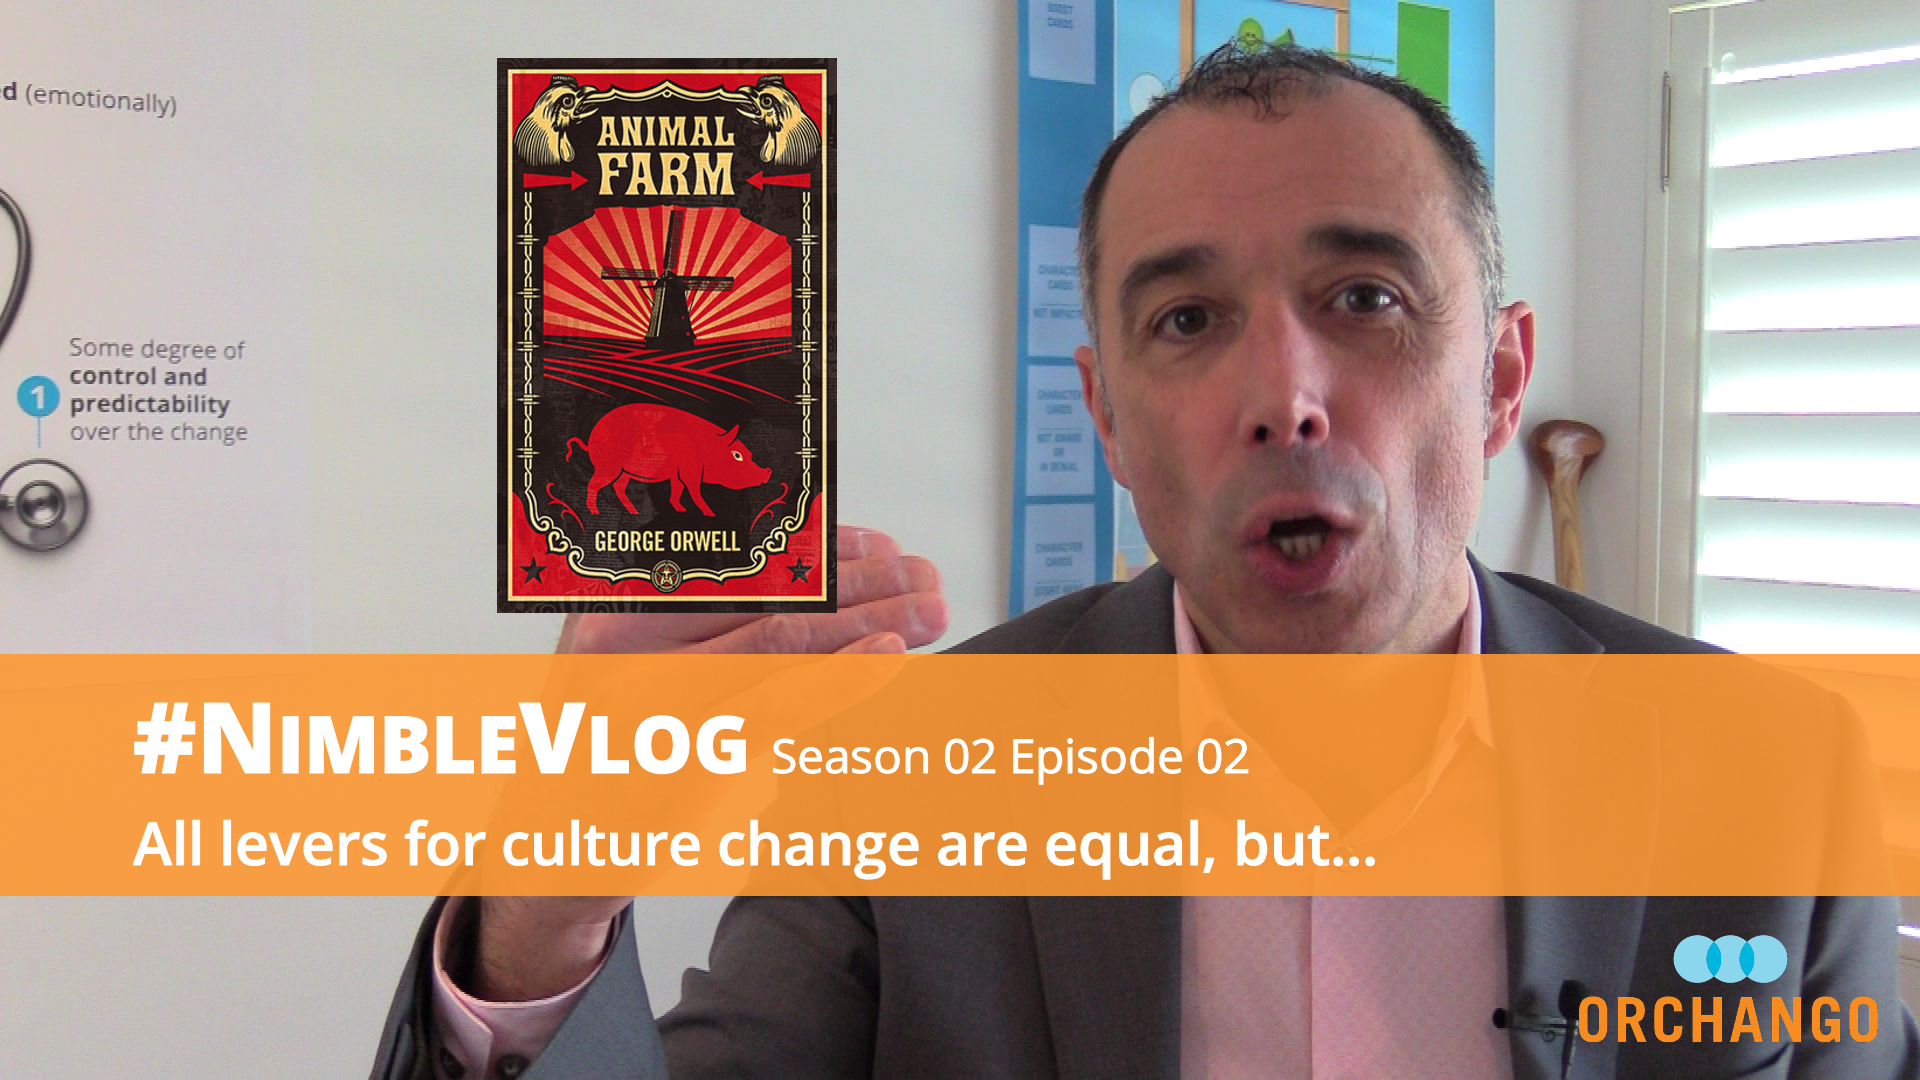 Snapshot #NimbleVlog S02 E02: All Levers For Culture Change Are Equal, But...